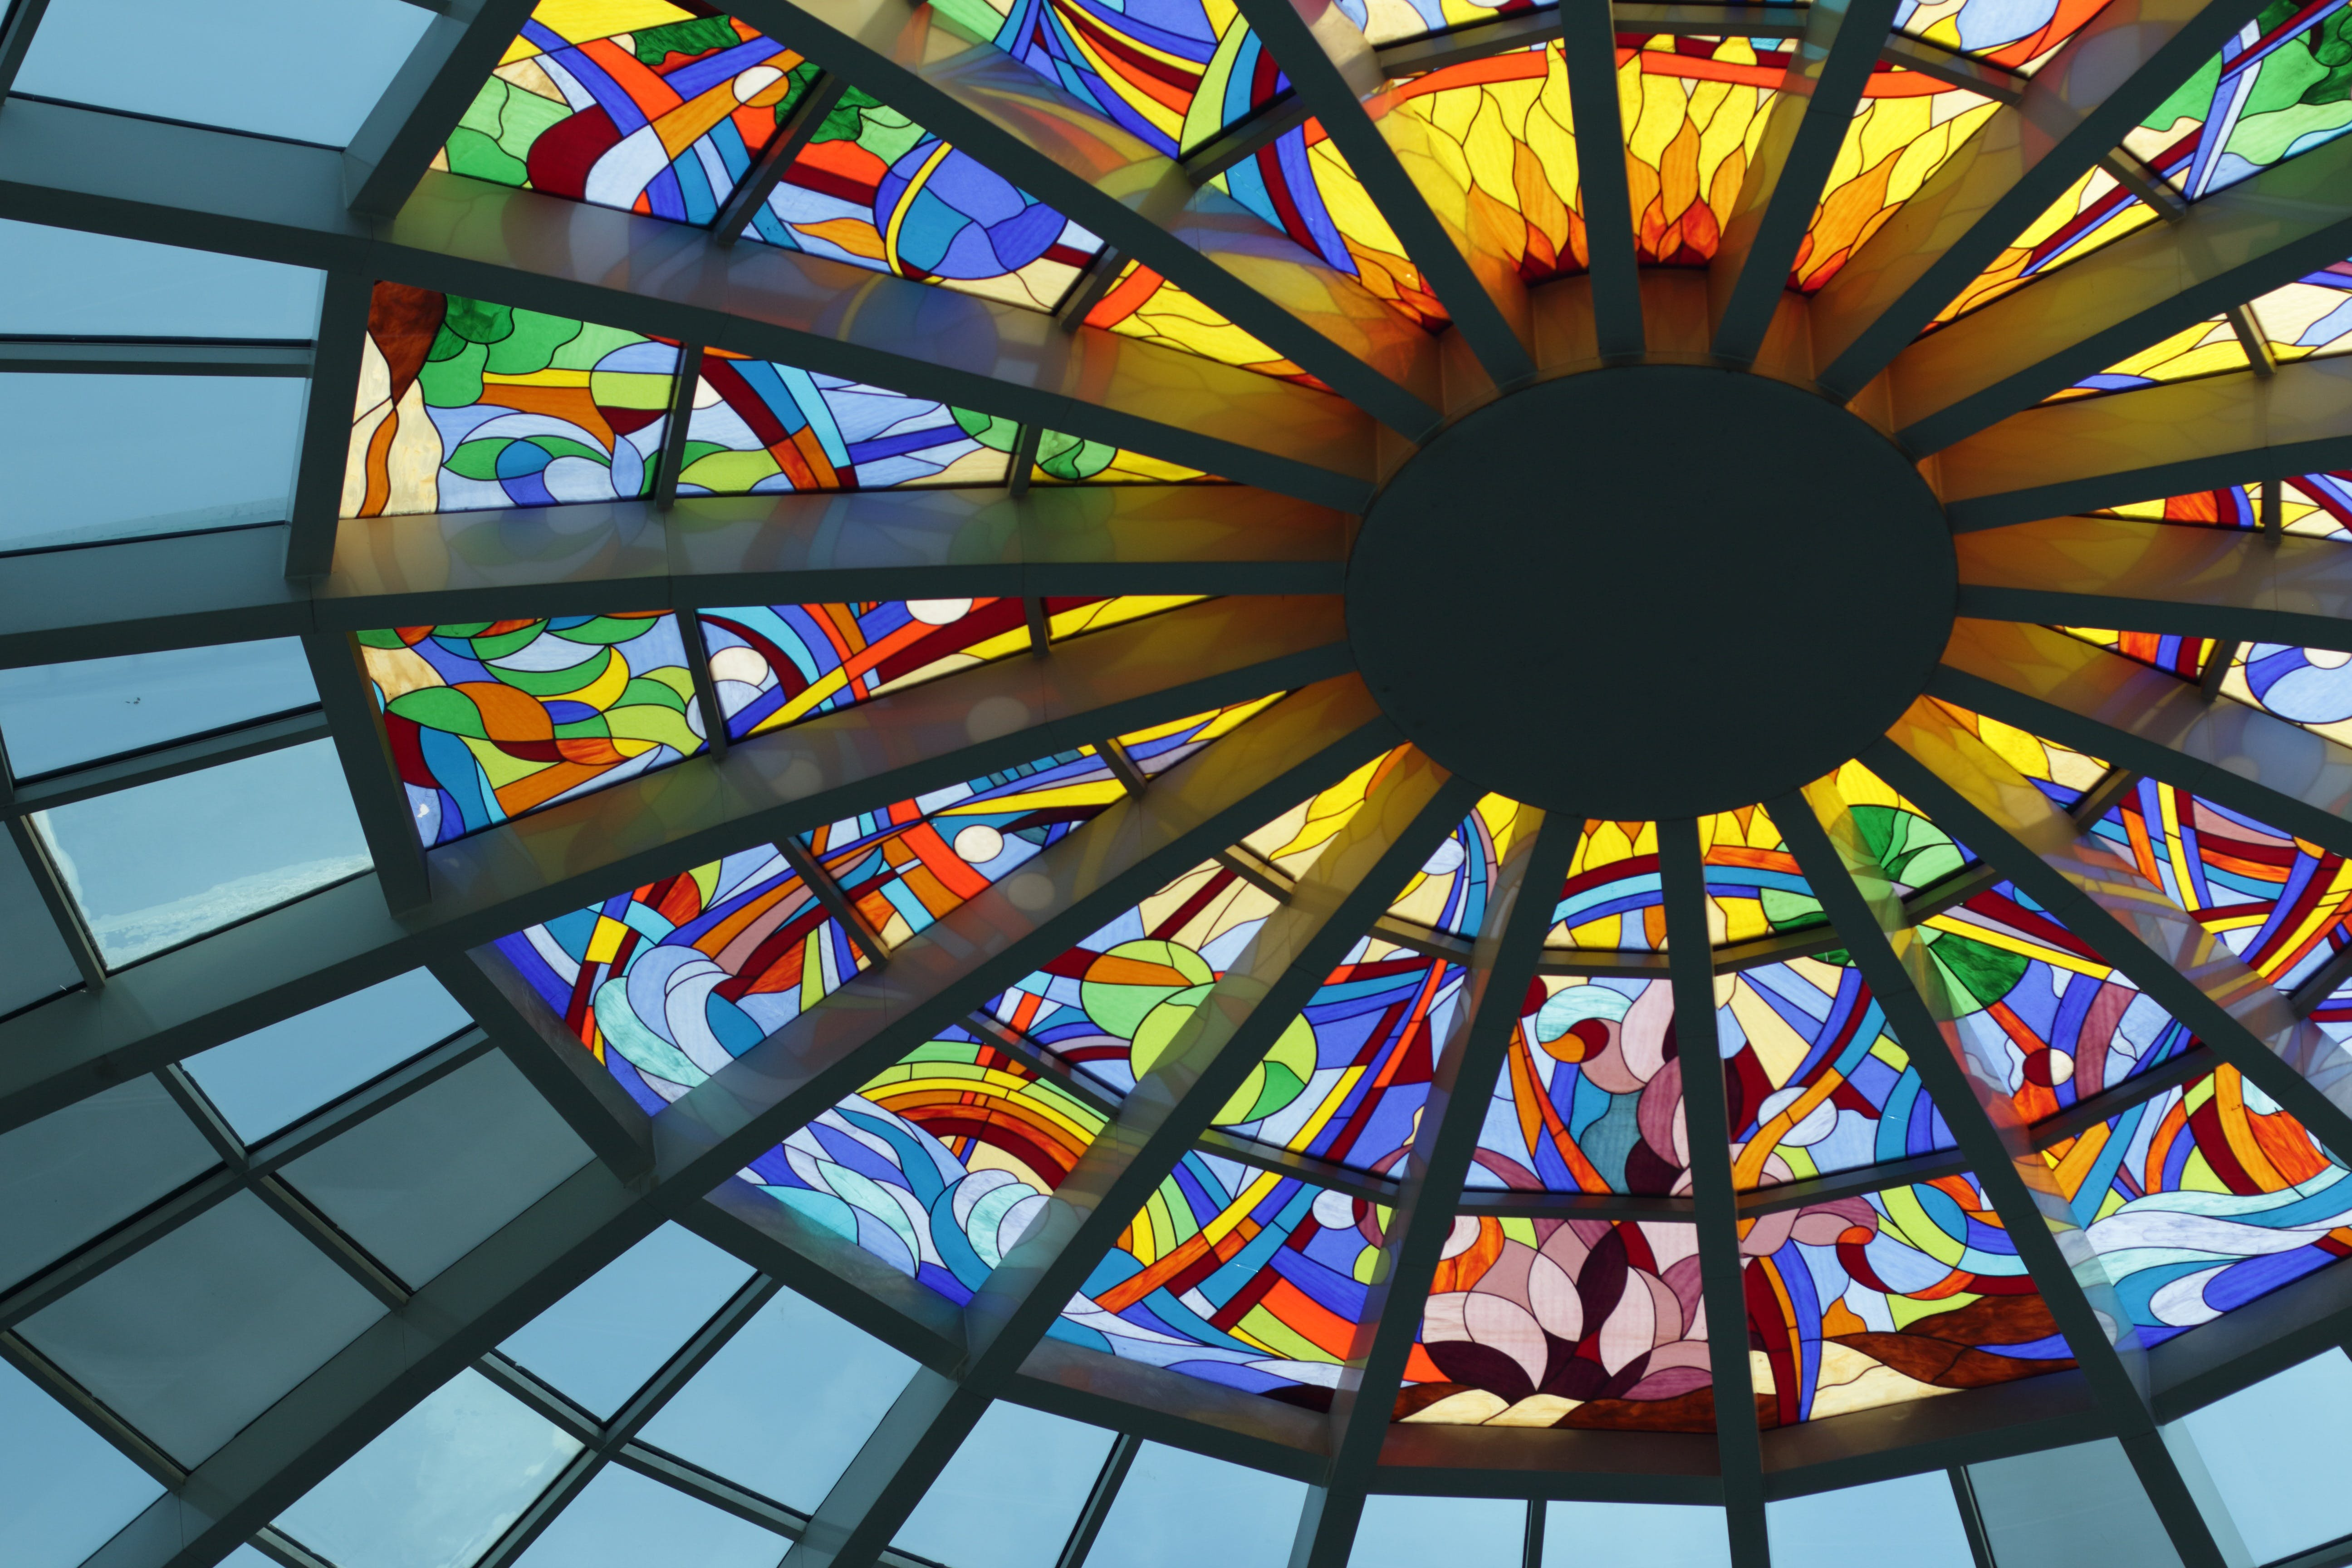 Stained Glass Ceiling during Daytime